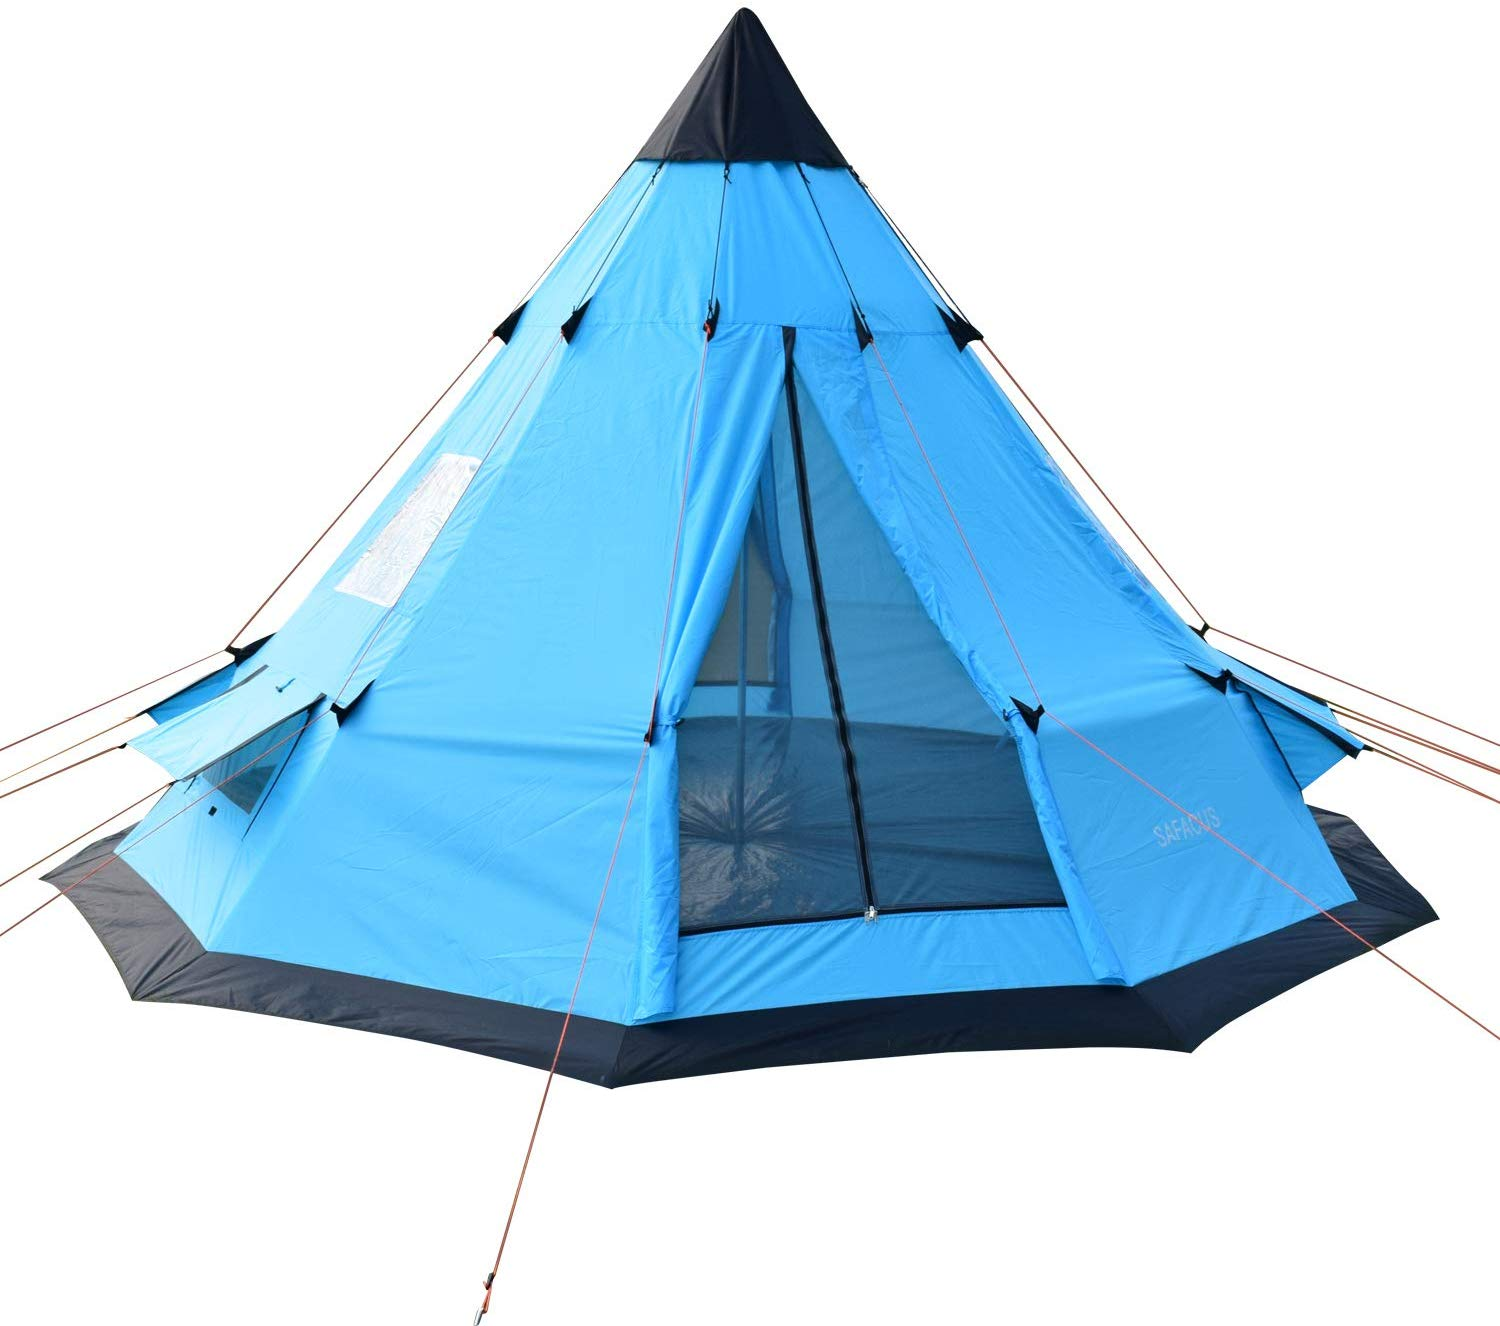 Best Tipi Tent #3 Choice